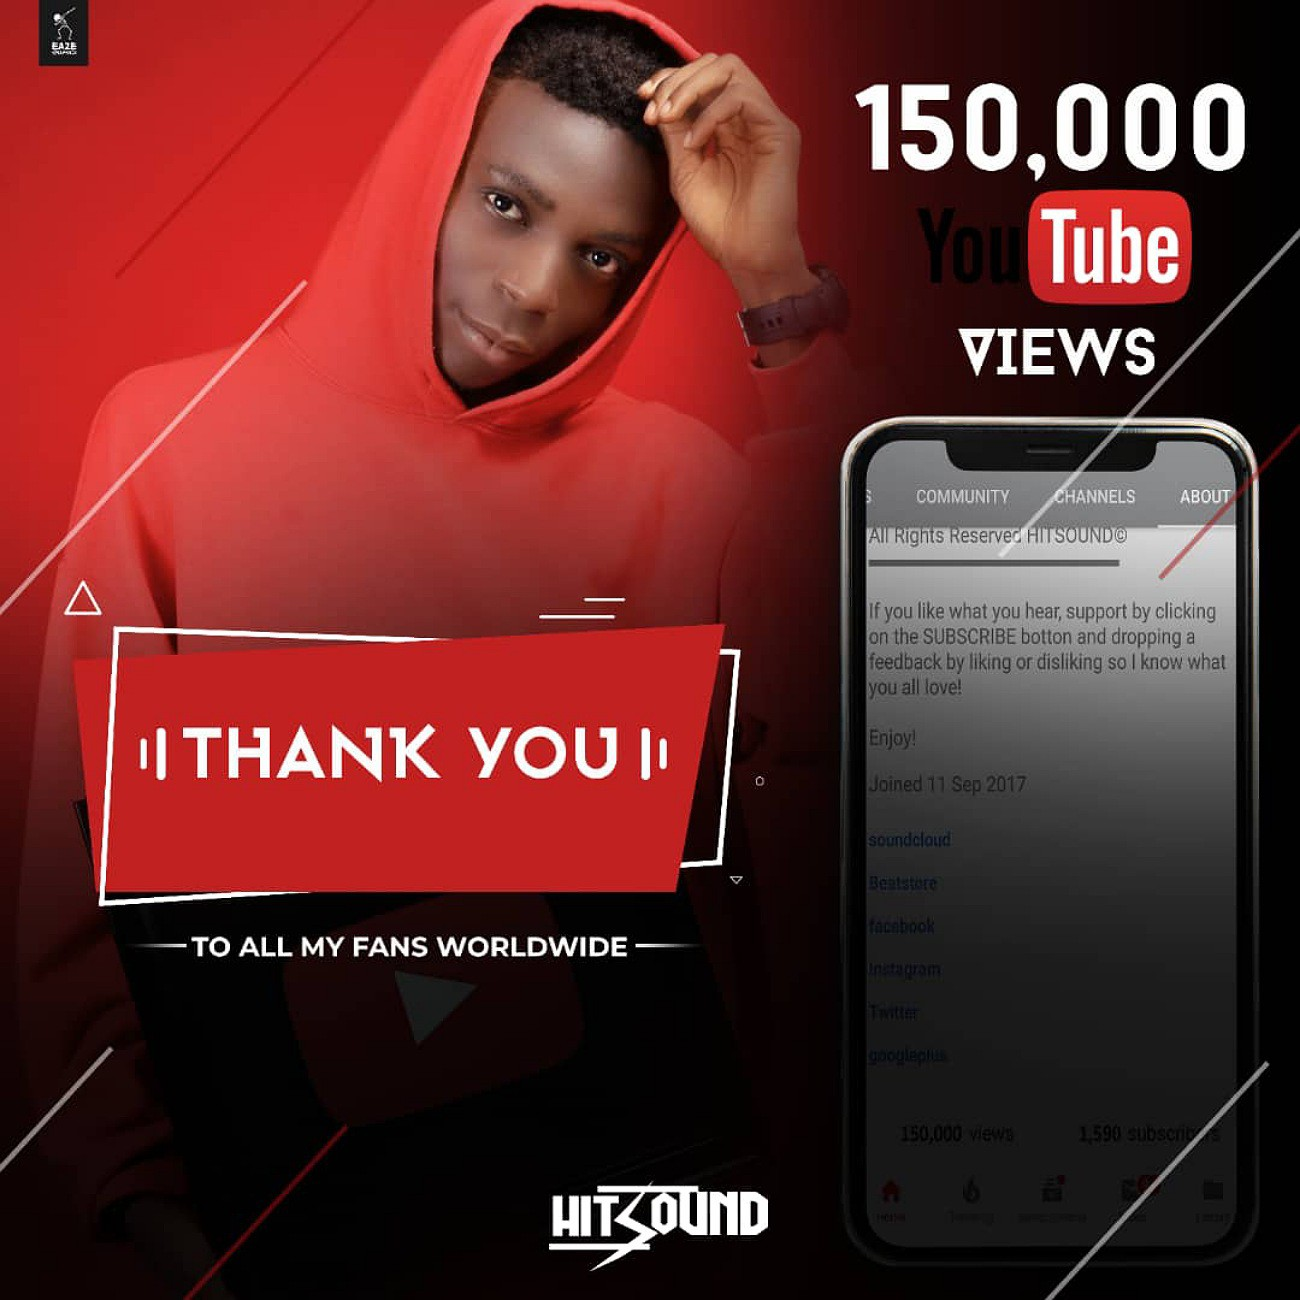 Hitsound Hits 150k Views And Counting On YouTube